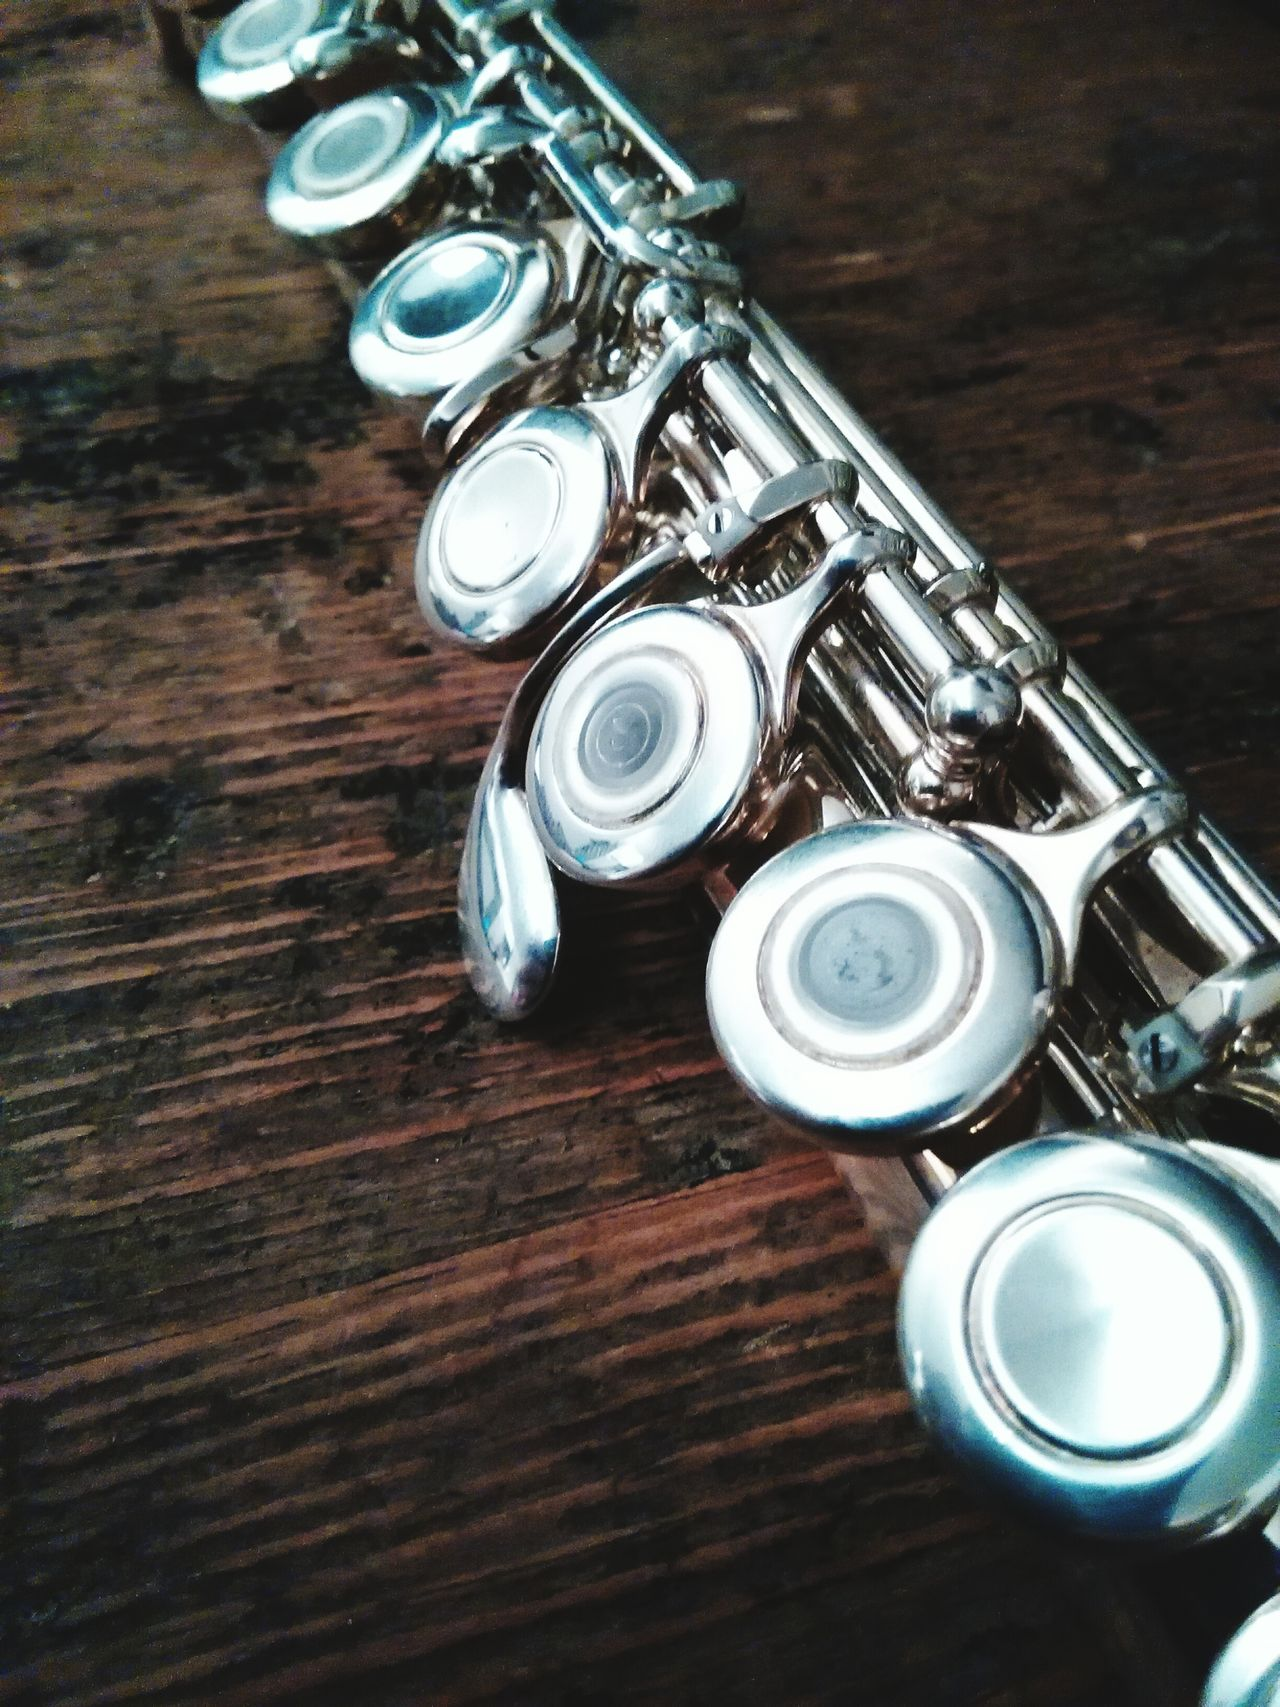 Flute My Flute Taking Photos Close Up Music Instrument Making Music Music Is My Life